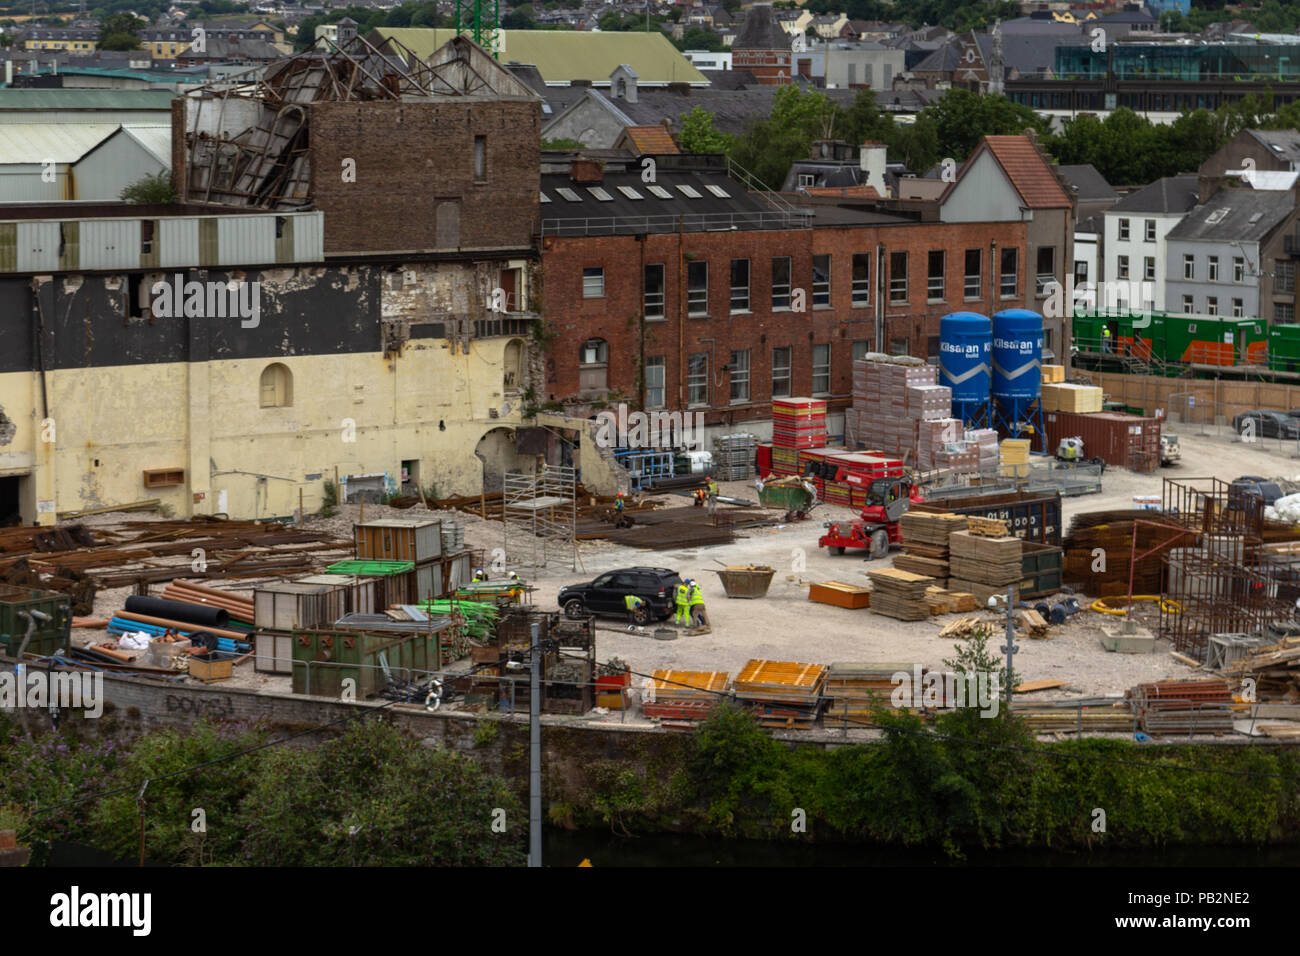 Construction on the site of the former Beamish and Crawford Brewer Site making way for the new Events Centre. - Stock Image